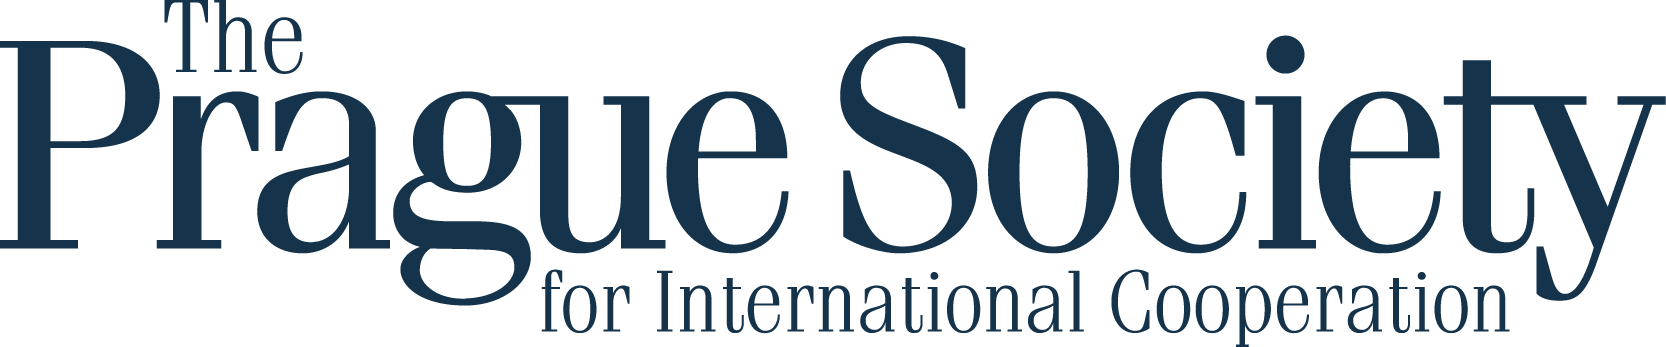 logo for Prague Society for International Cooperation